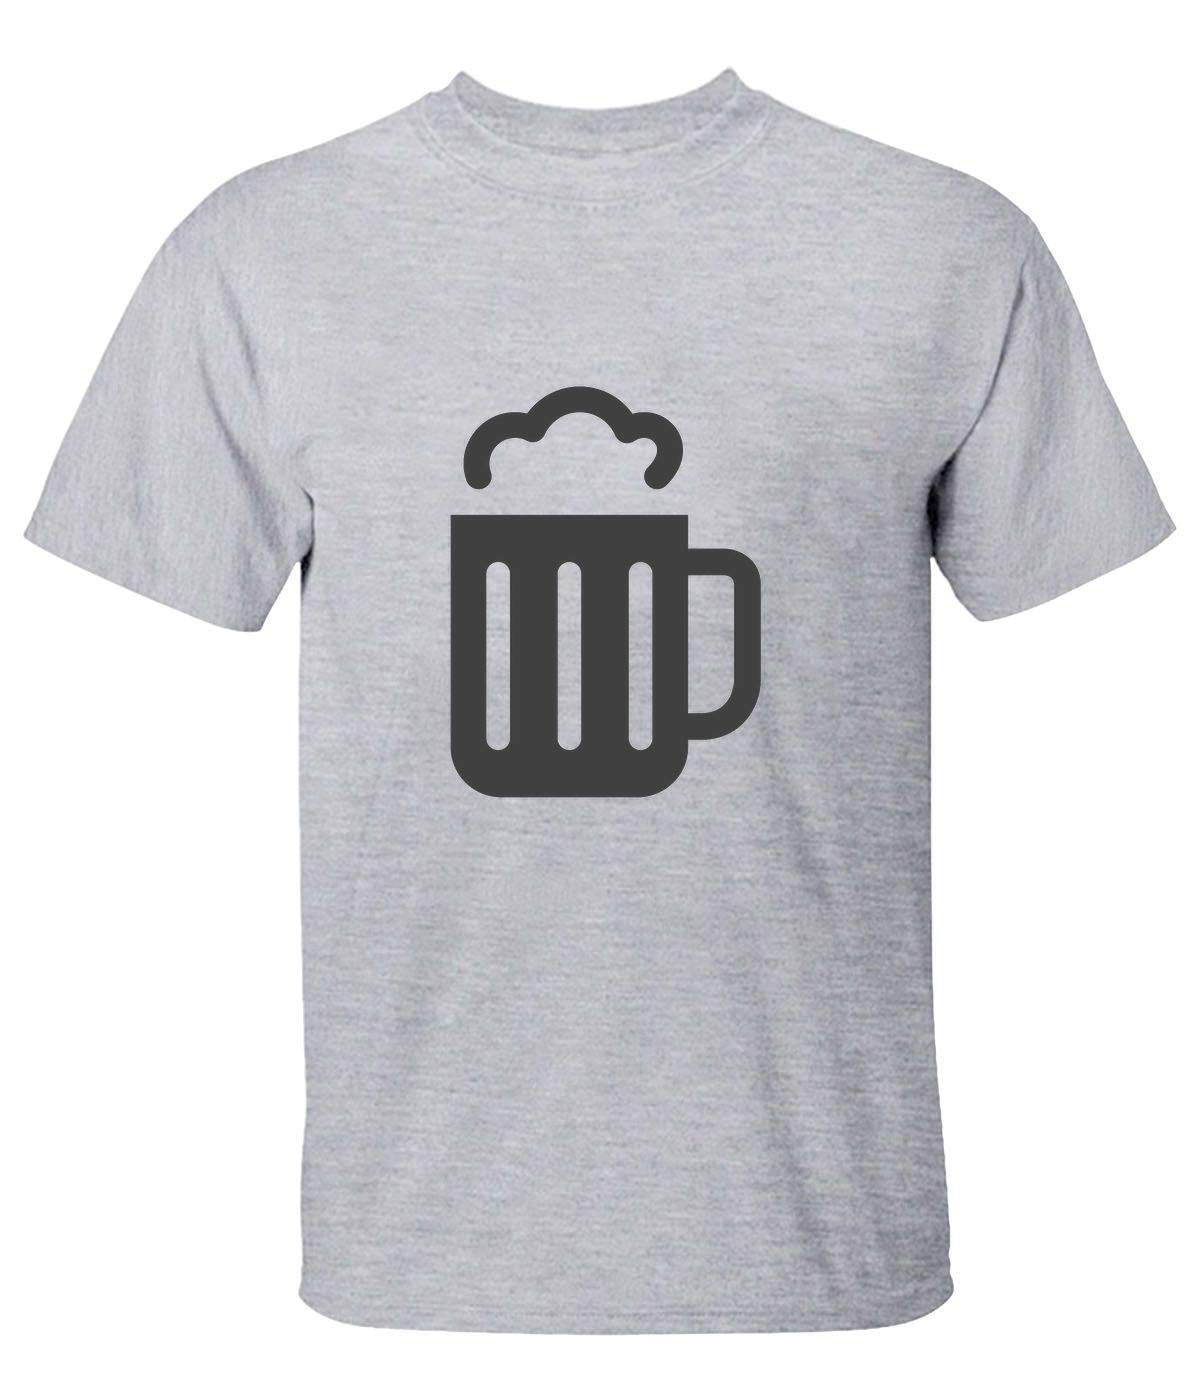 Renyiyi Beer 050612 Ts For S Shirts